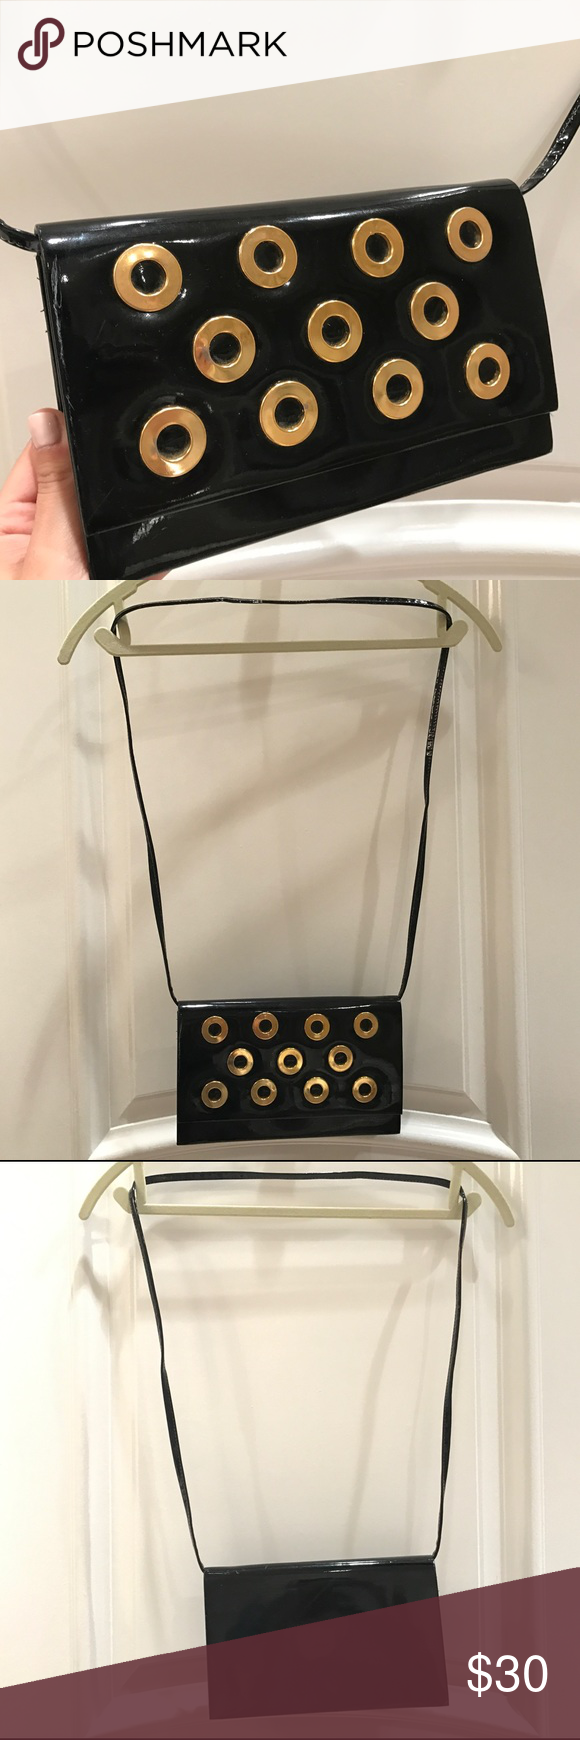 VINTAGE BLACK & GOLD Patent Leather Crossbody Bag Very cute and unique cross body purse .. vintage so please see detailed pics for minor signs of wear but still amazing condition. Let me know if you have questions :) *brand unknown- tagging Urban Outfitters for exposure!* Urban Outfitters Bags Crossbody Bags